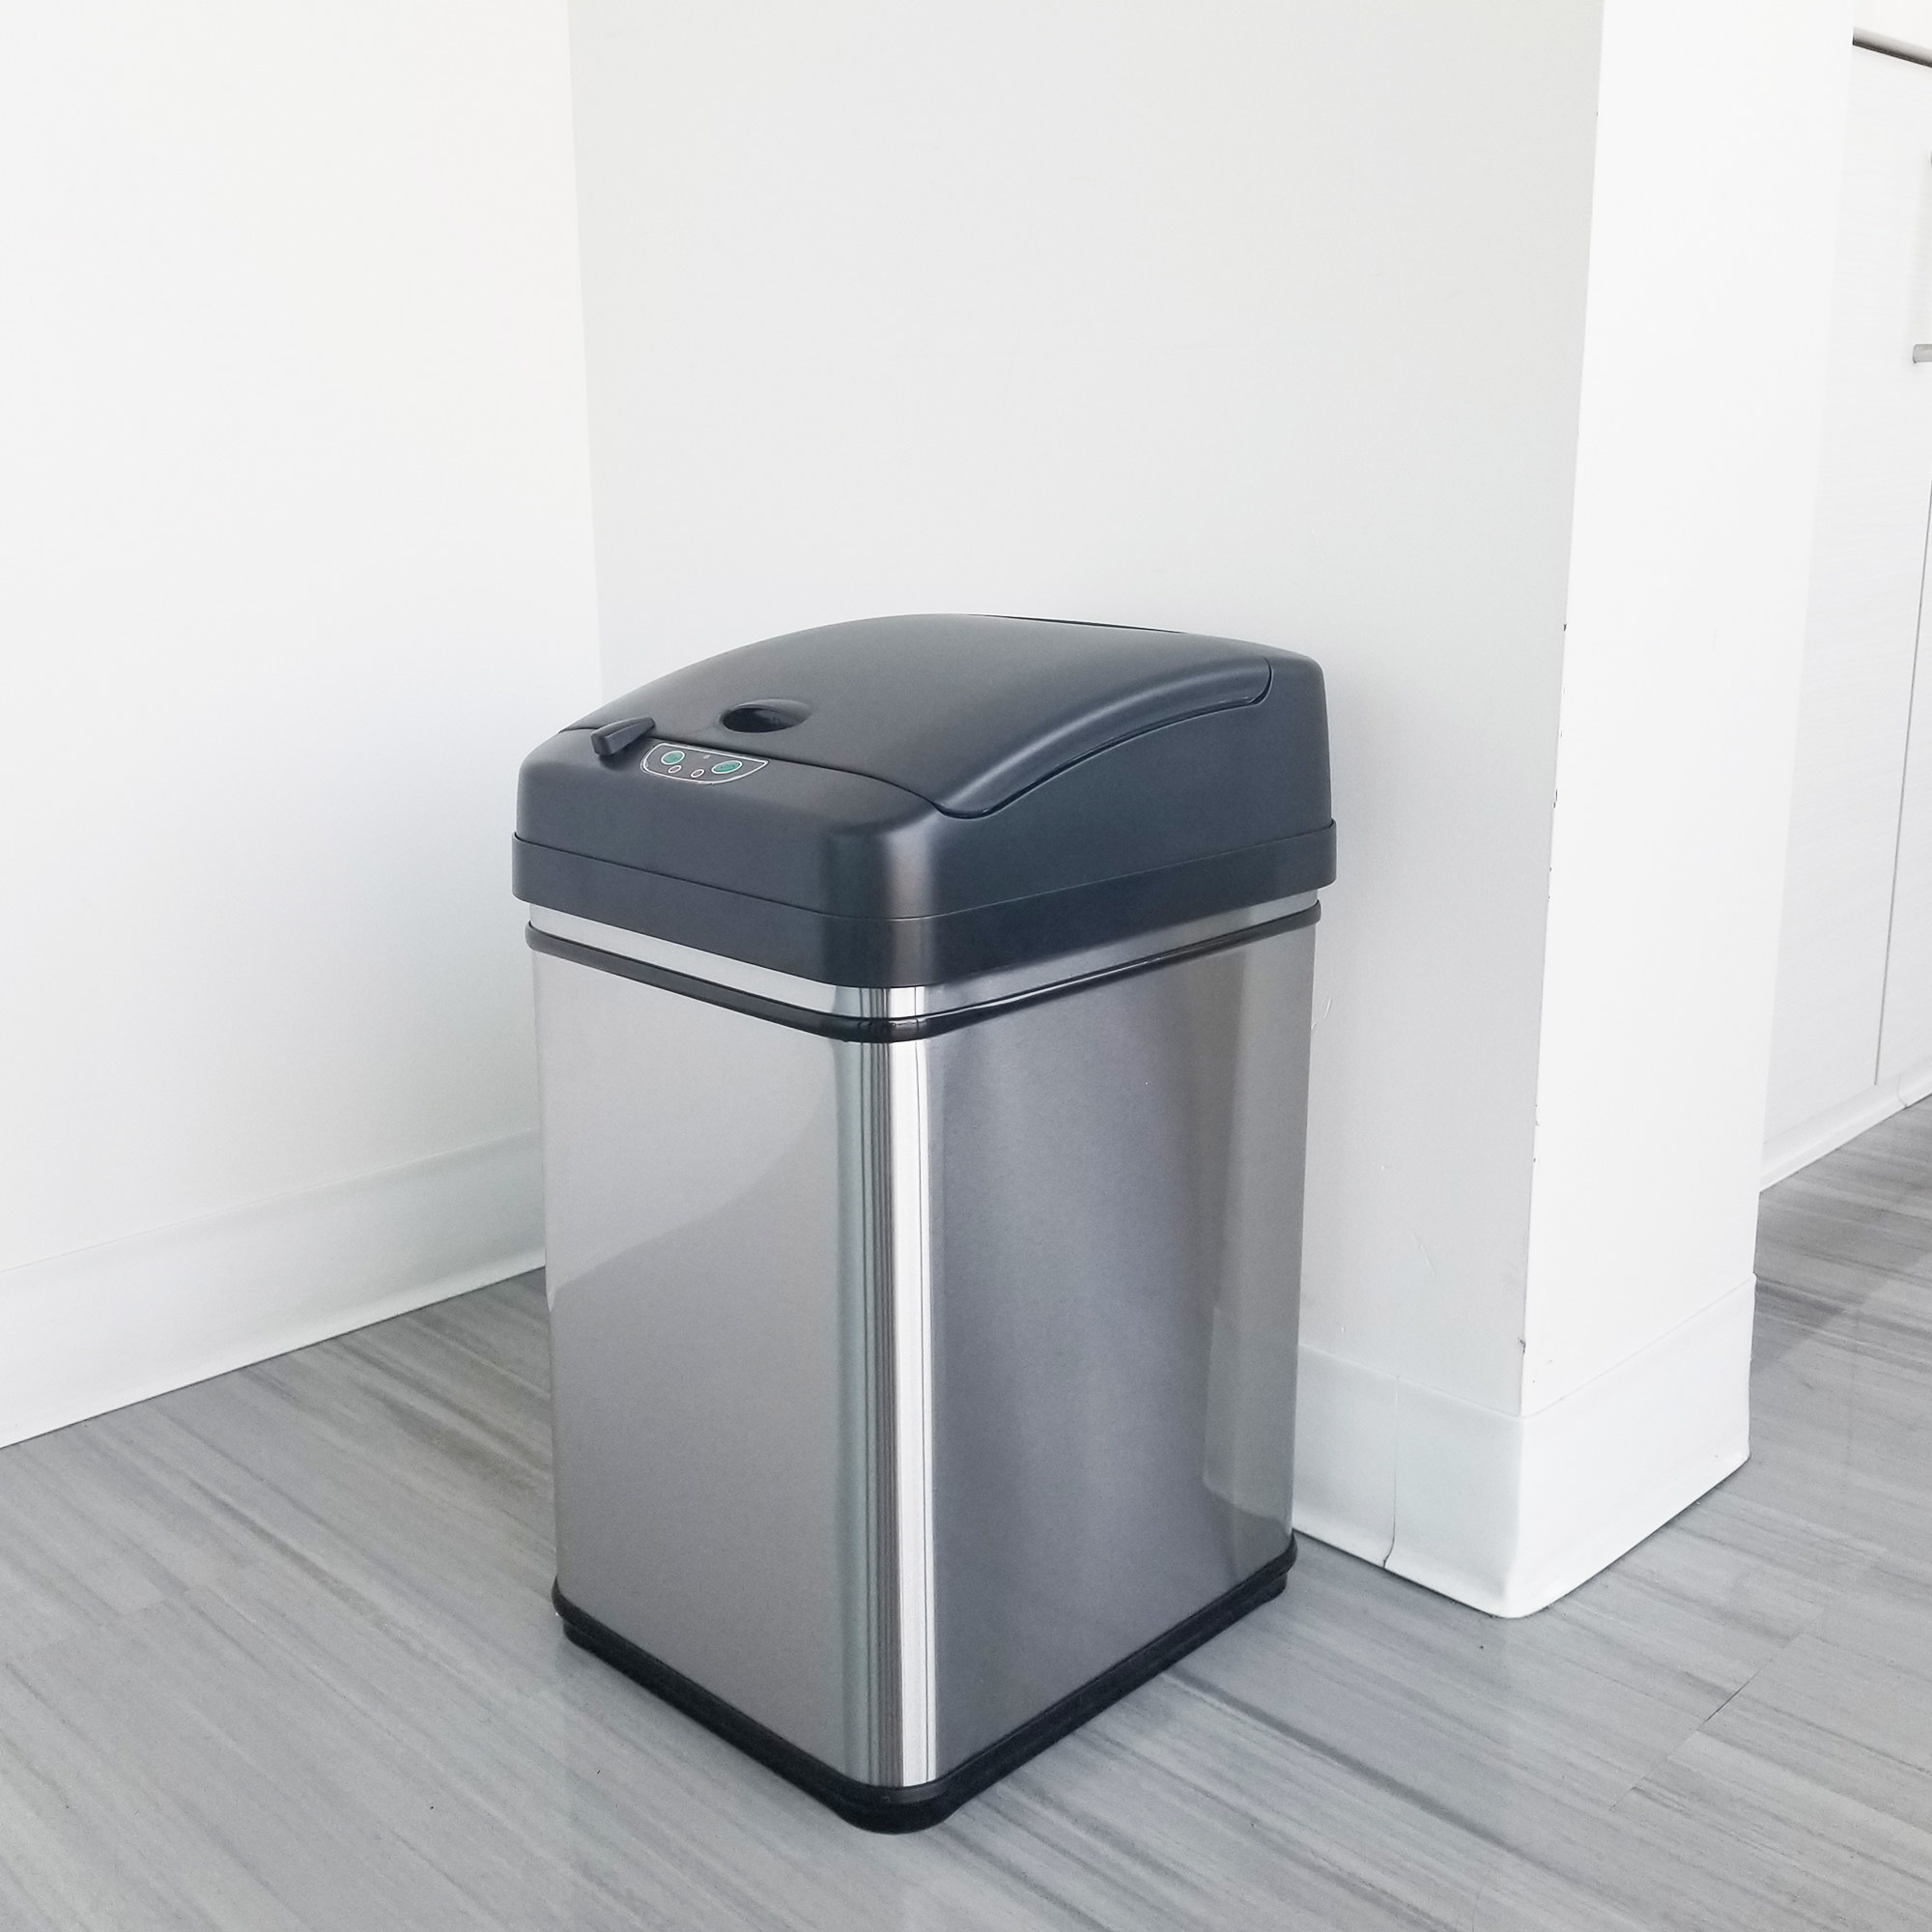 The trash can